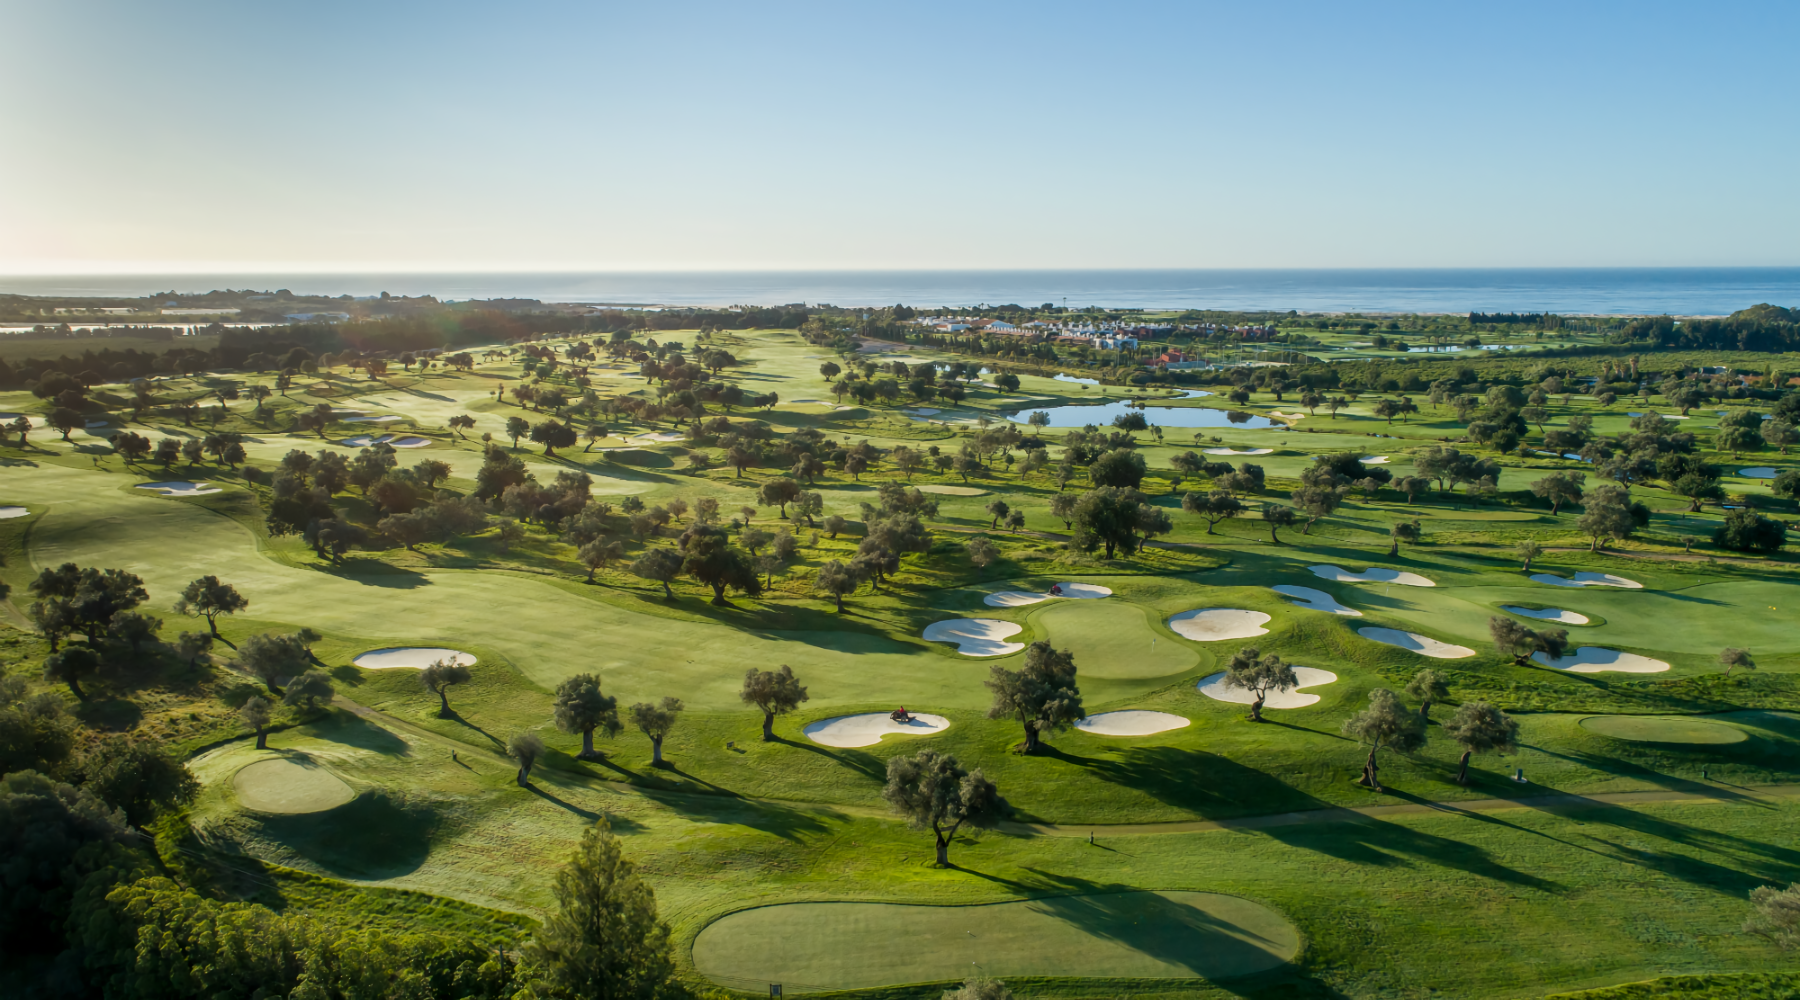 Quinta da Ria golf aereal view